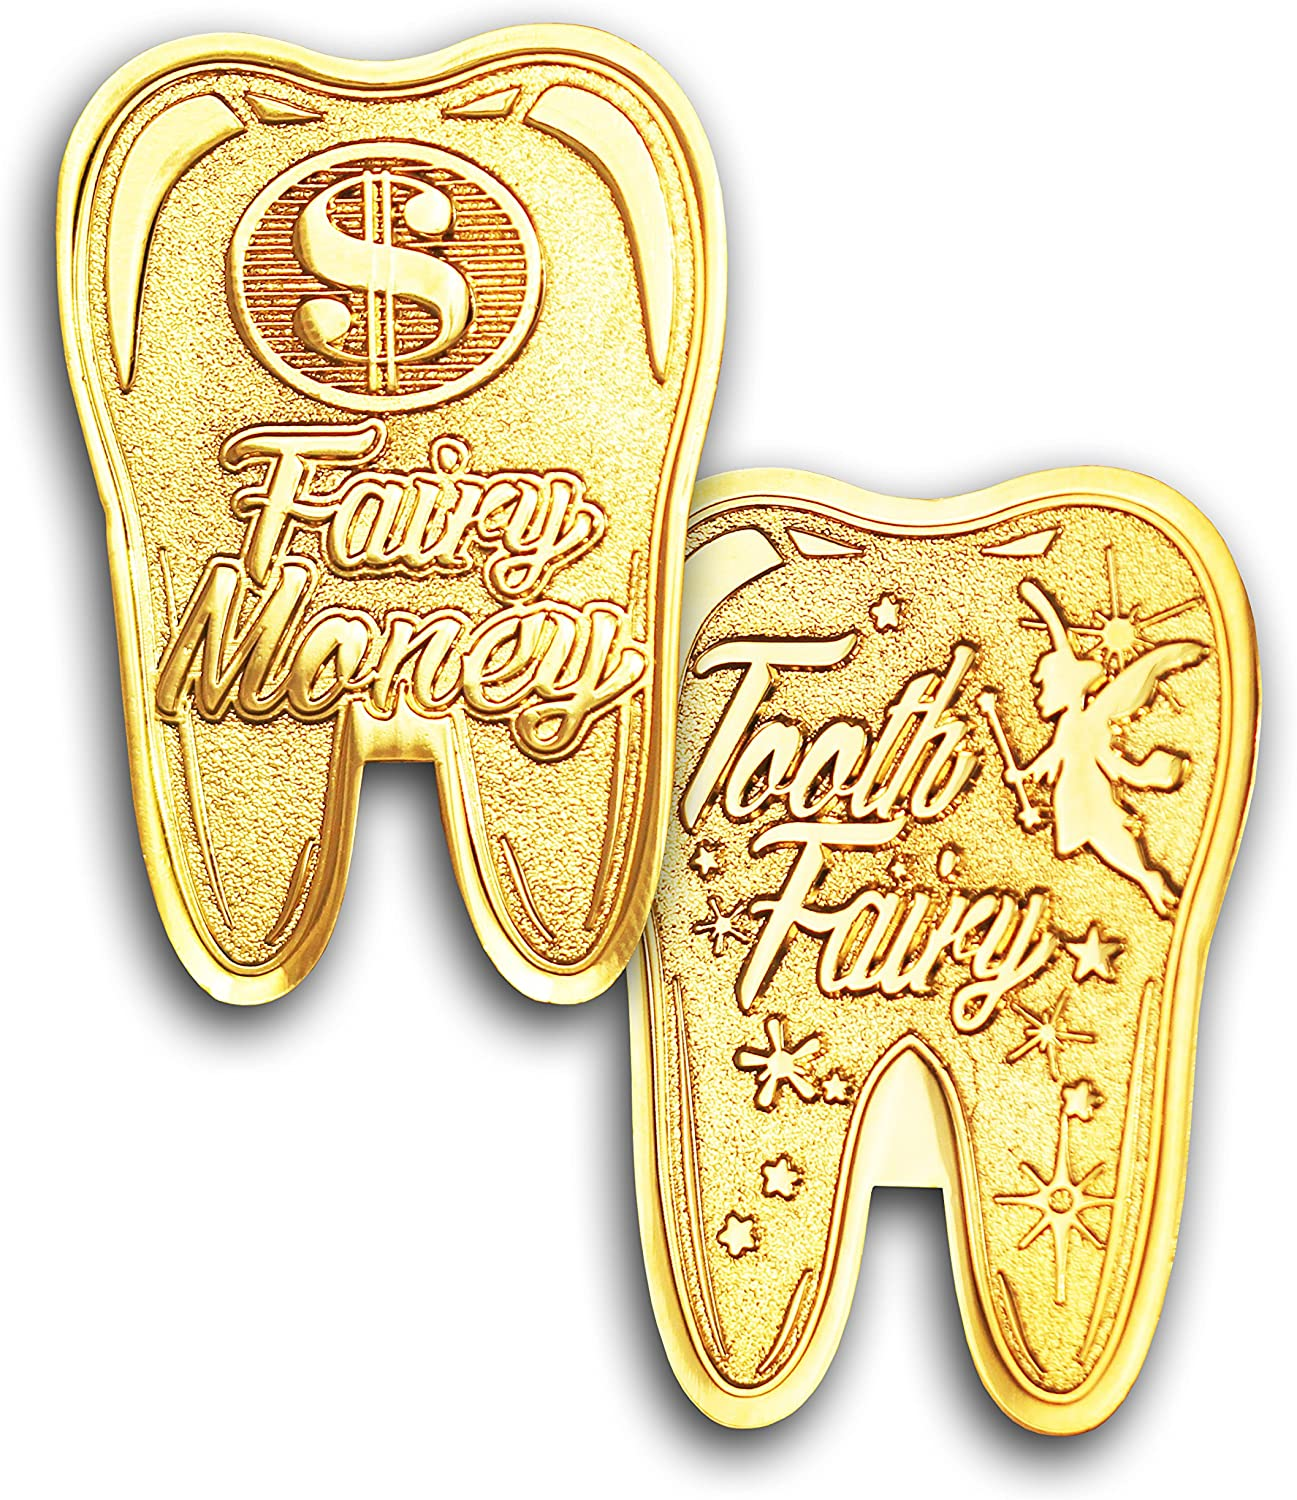 Ycncixwd Tooth Fairy Commemorative Coin Collection Gift Souvenir for Chlidren Gift